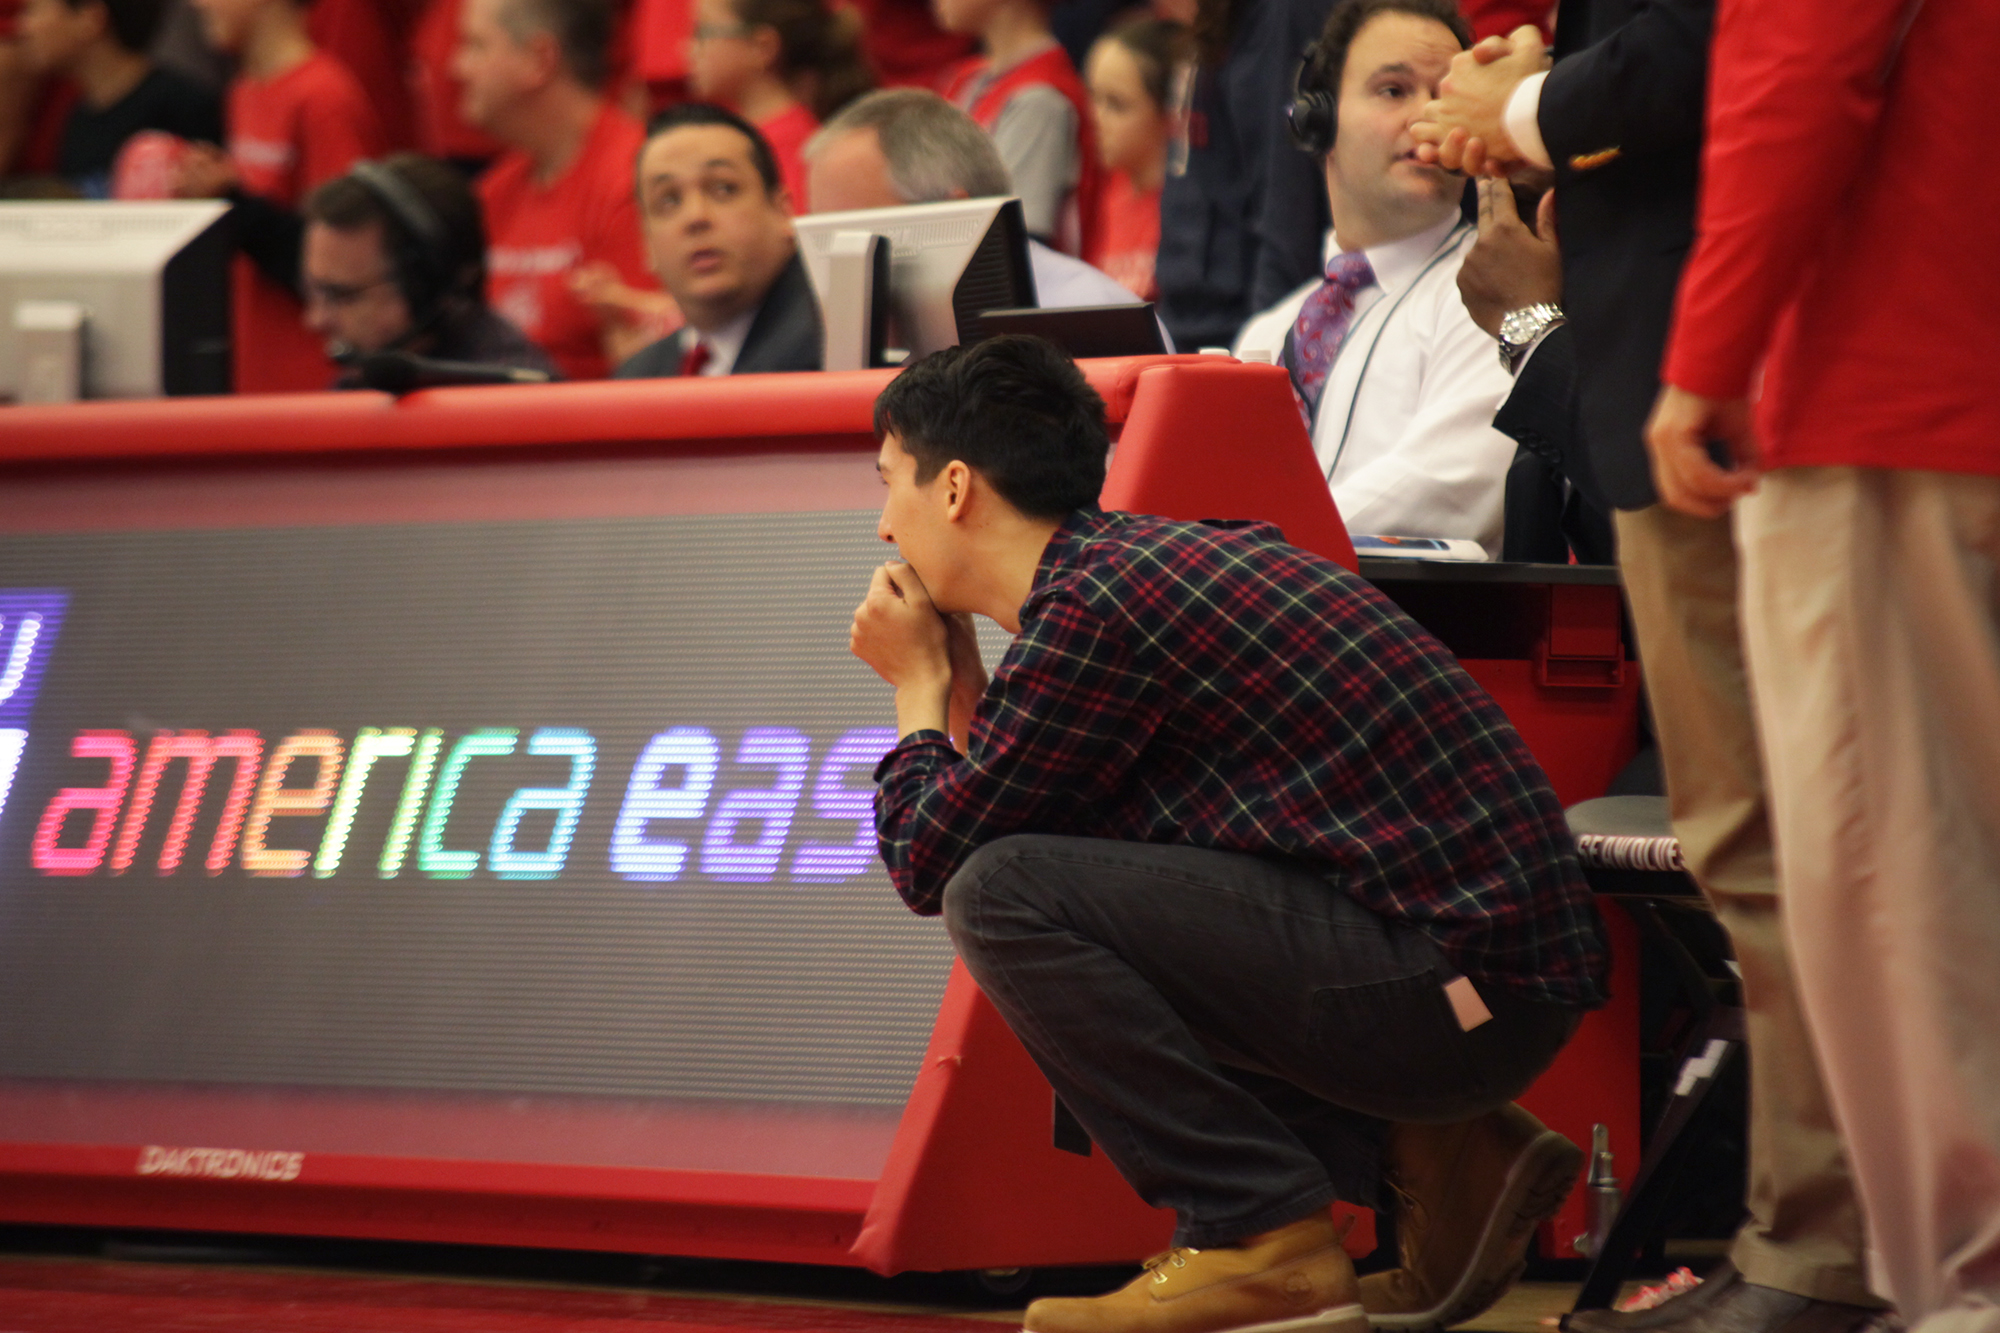 Samuel Stanley III, the son of Stony Brook University President Samuel L. Stanley Jr., watches on as the Seawolves maintain a one-point lead over Vermont during the championship game with less than three minutes of game time. CHRISTOPHER CAMERON/THE STATESMAN